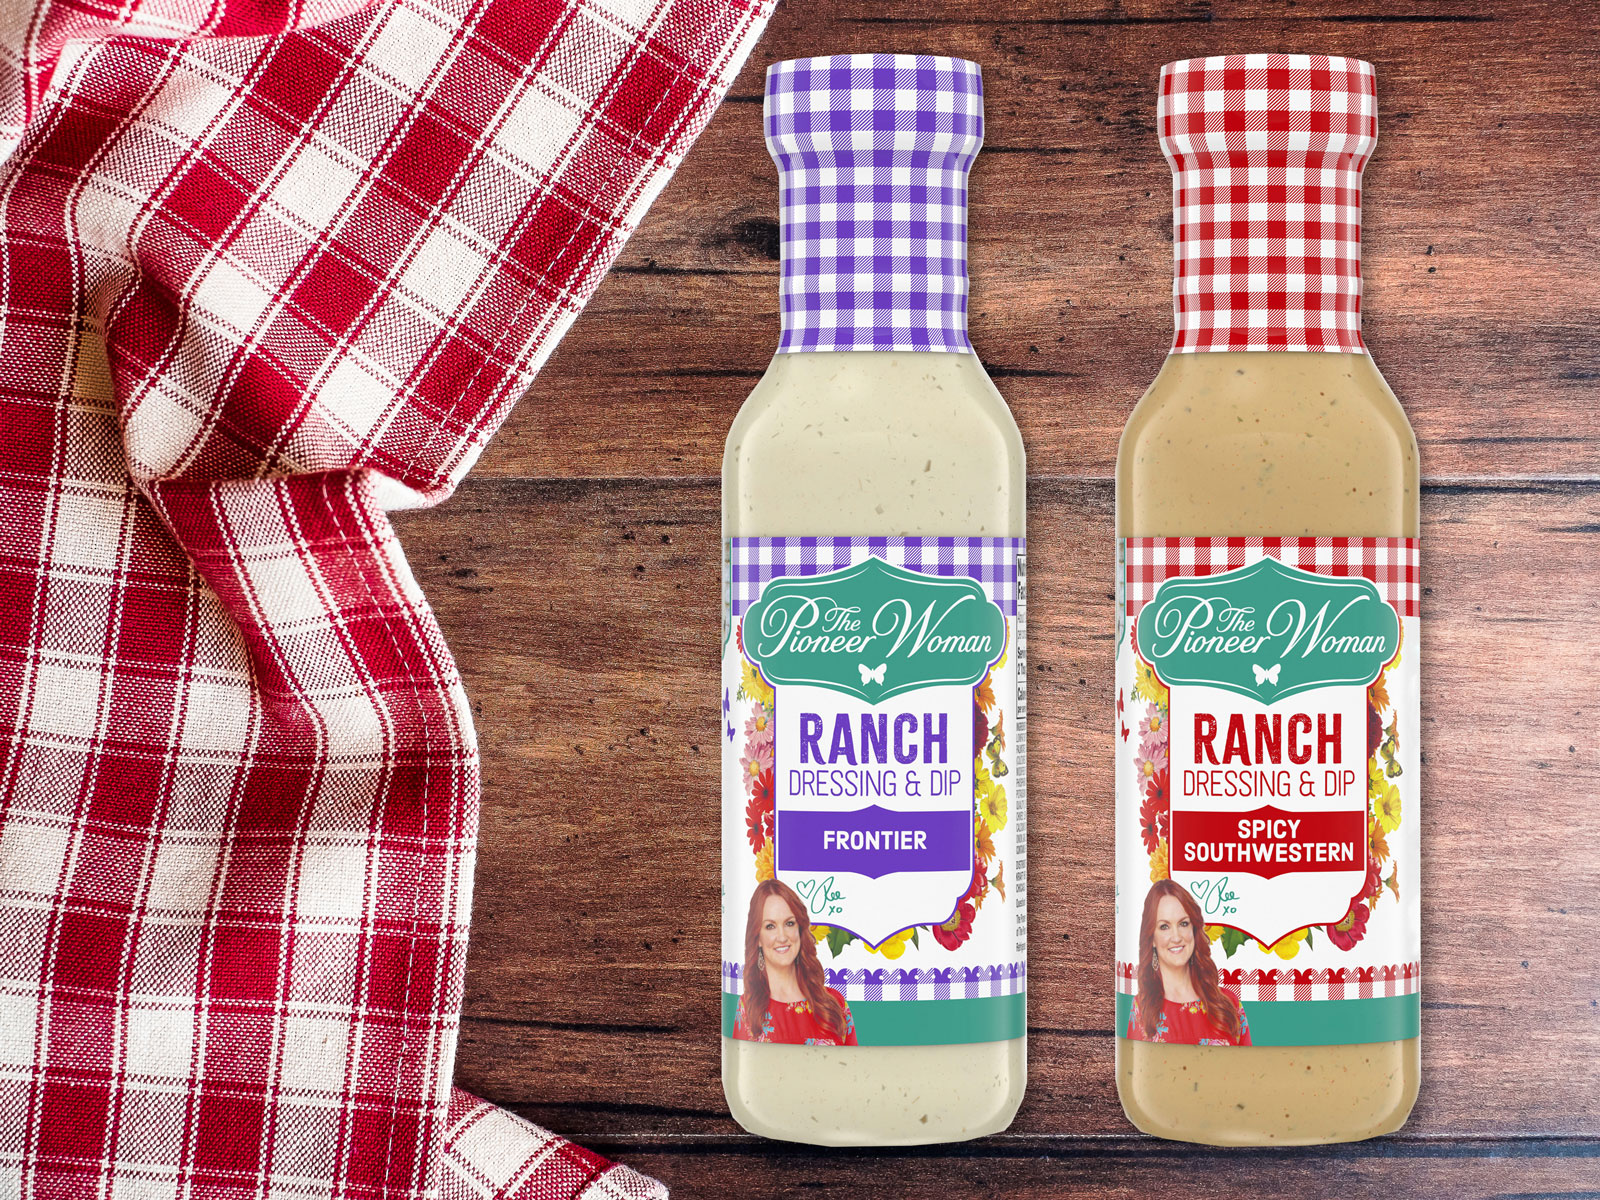 pioneer-woman-ranch-dressings-FT-BLOG0419.jpg